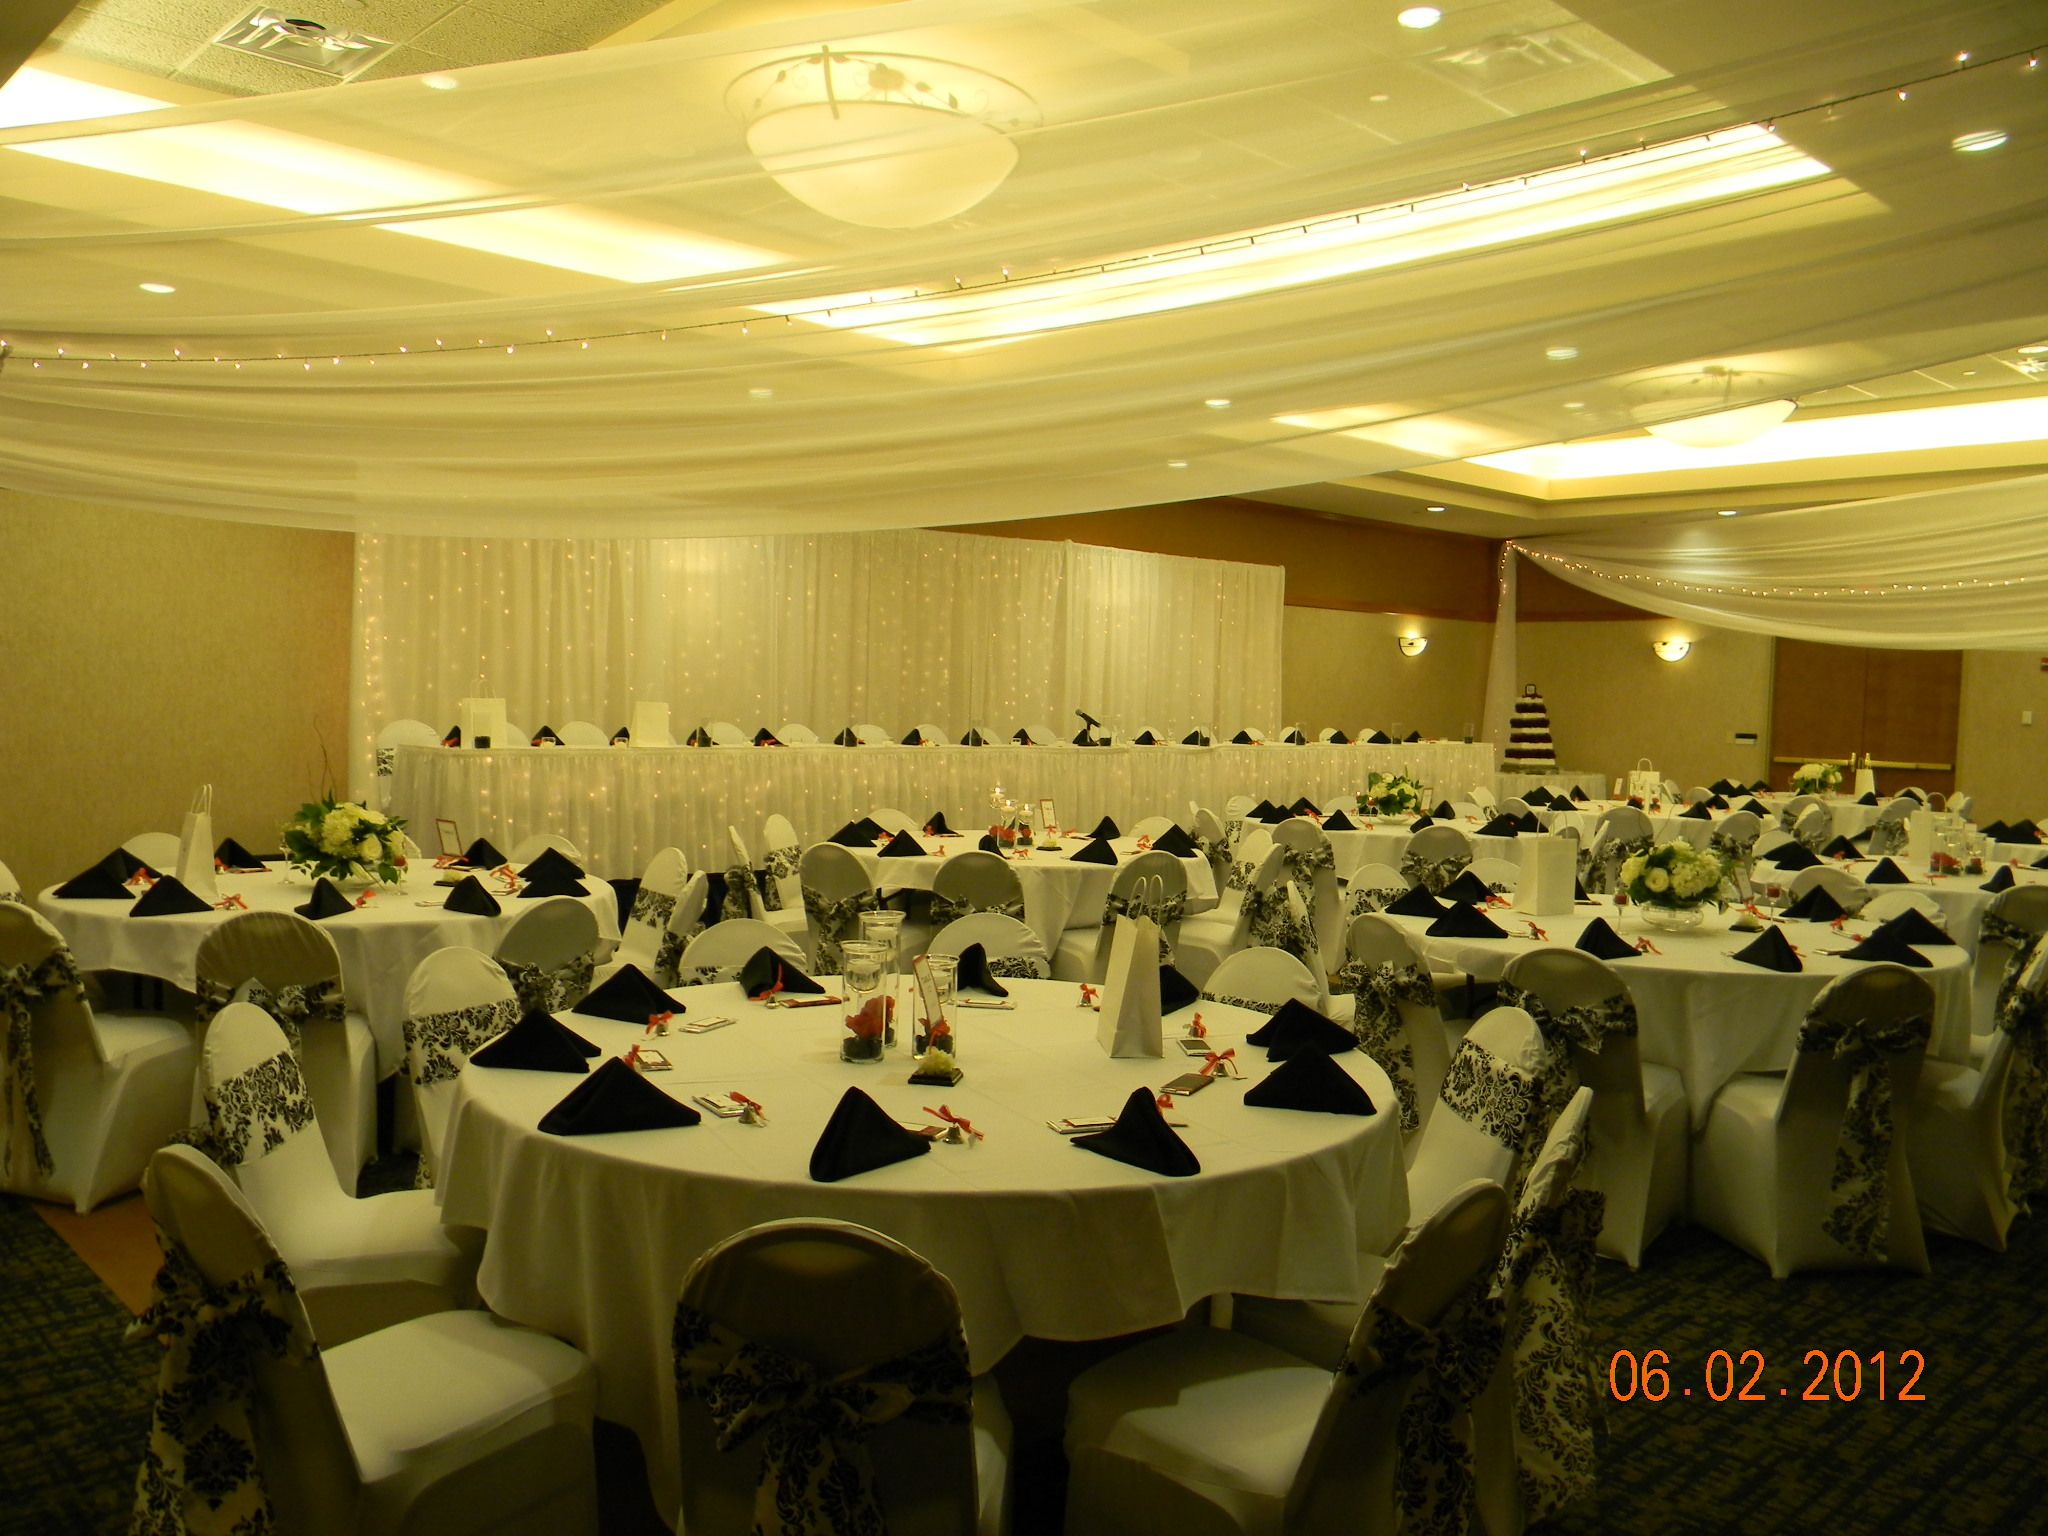 grands ceilings the mulligans event at and draping geyer wedding rental rentals drape ceiling